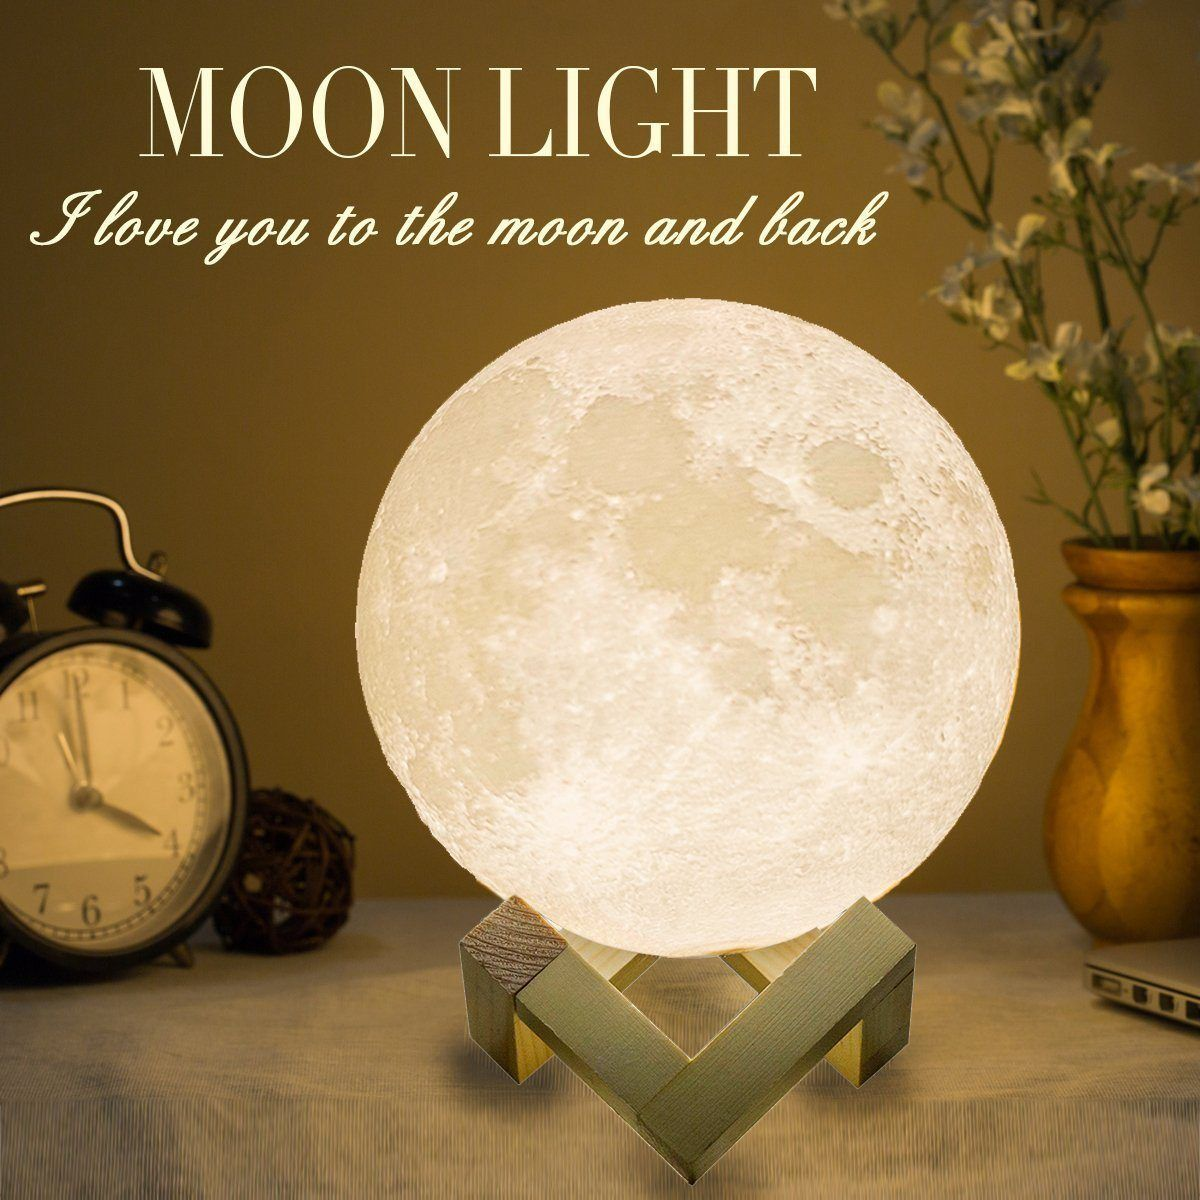 Mydethun Moon Lamp Moon Light Night Light Usb Charging And Touch Control Brightness 3d Printed Warm And Cool White Lunar Lamp Eclectic Table Lamps Night Light Wooden Lamp